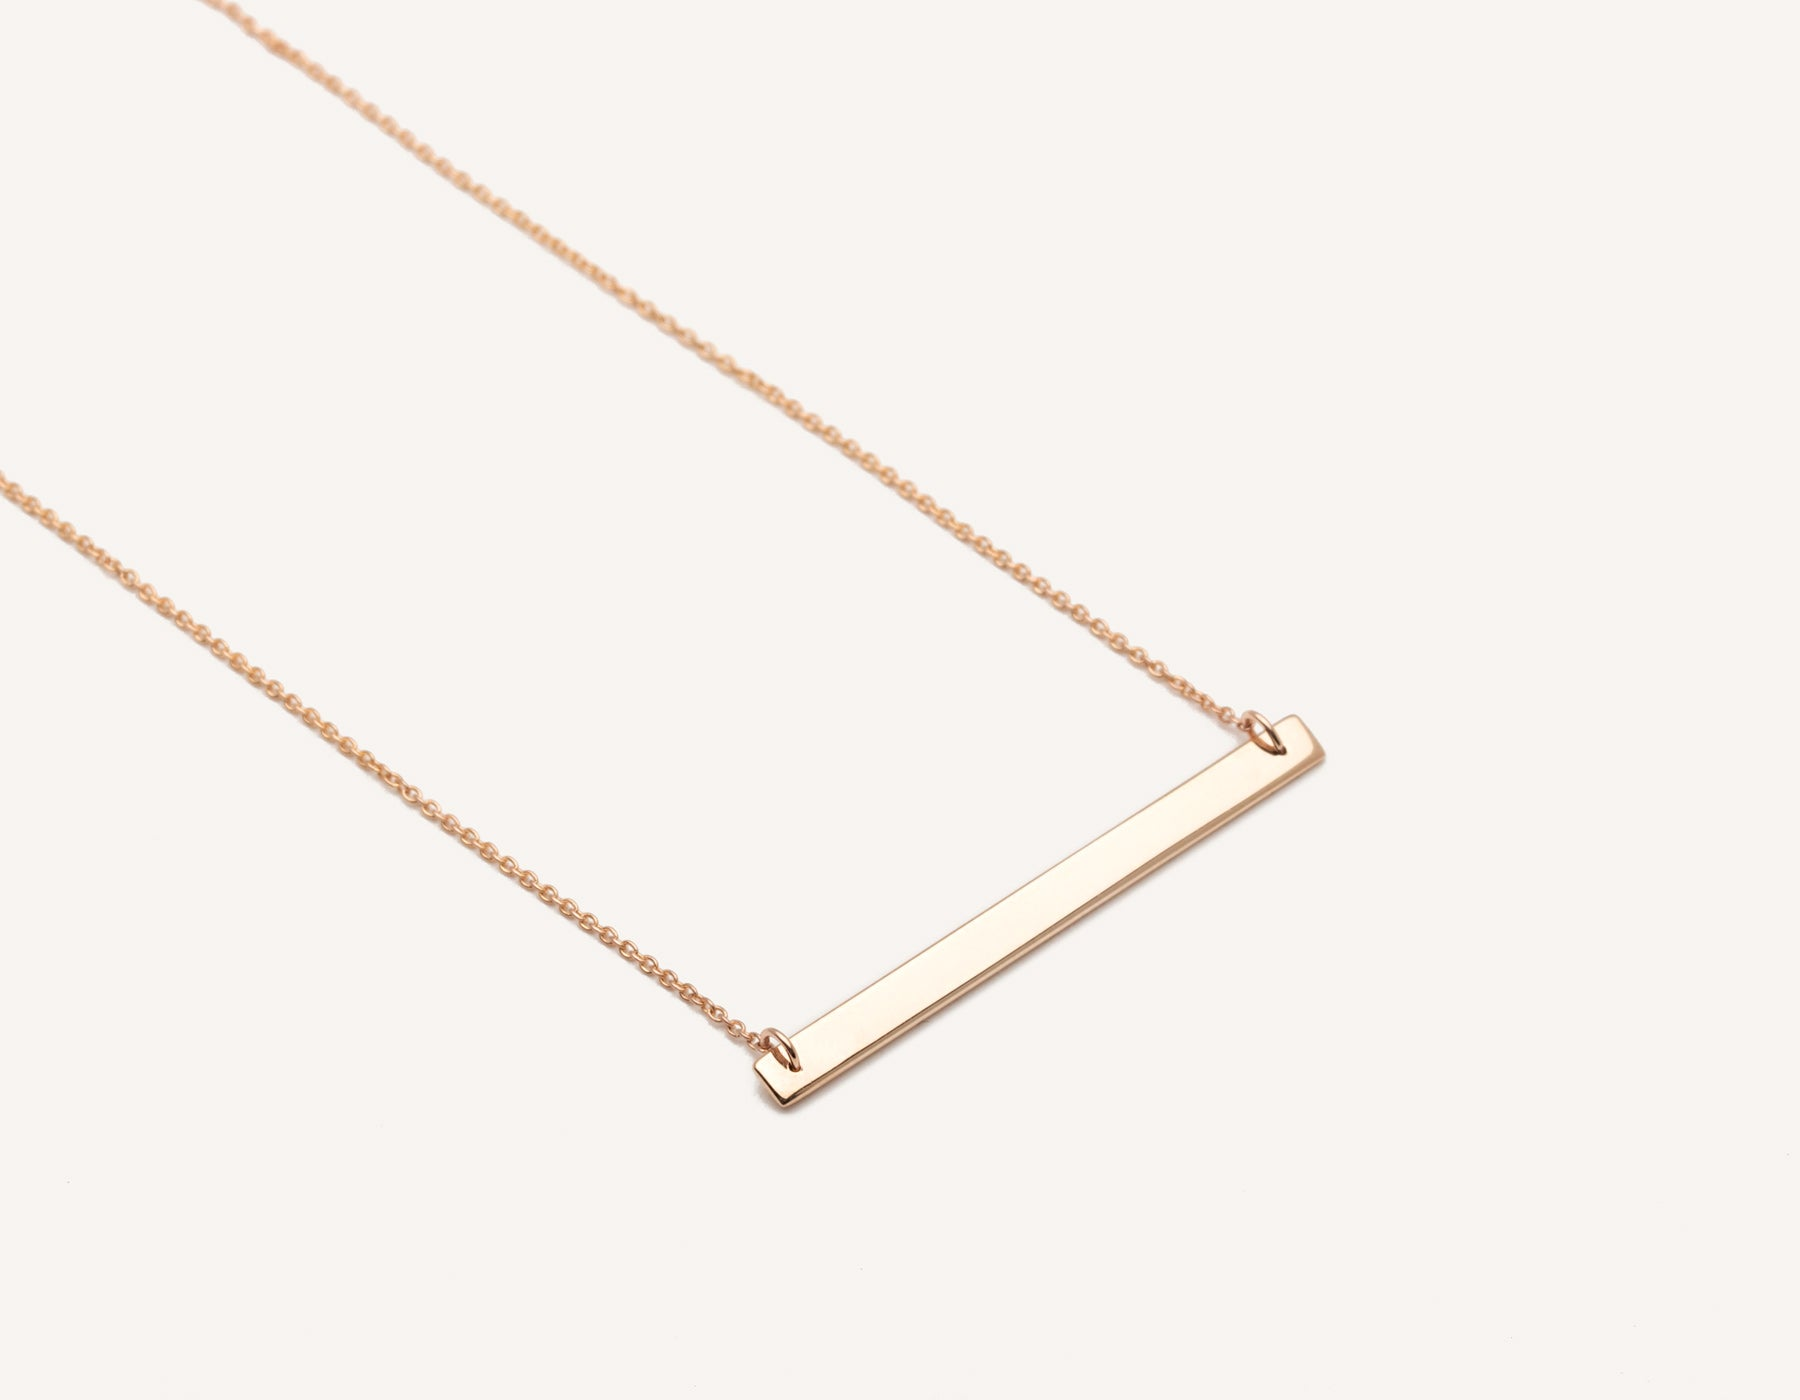 simple custom 14k solid gold thin Bar Necklace on delicate 17 inch chain by Vrai & Oro modern jewelry, 14K Rose Gold